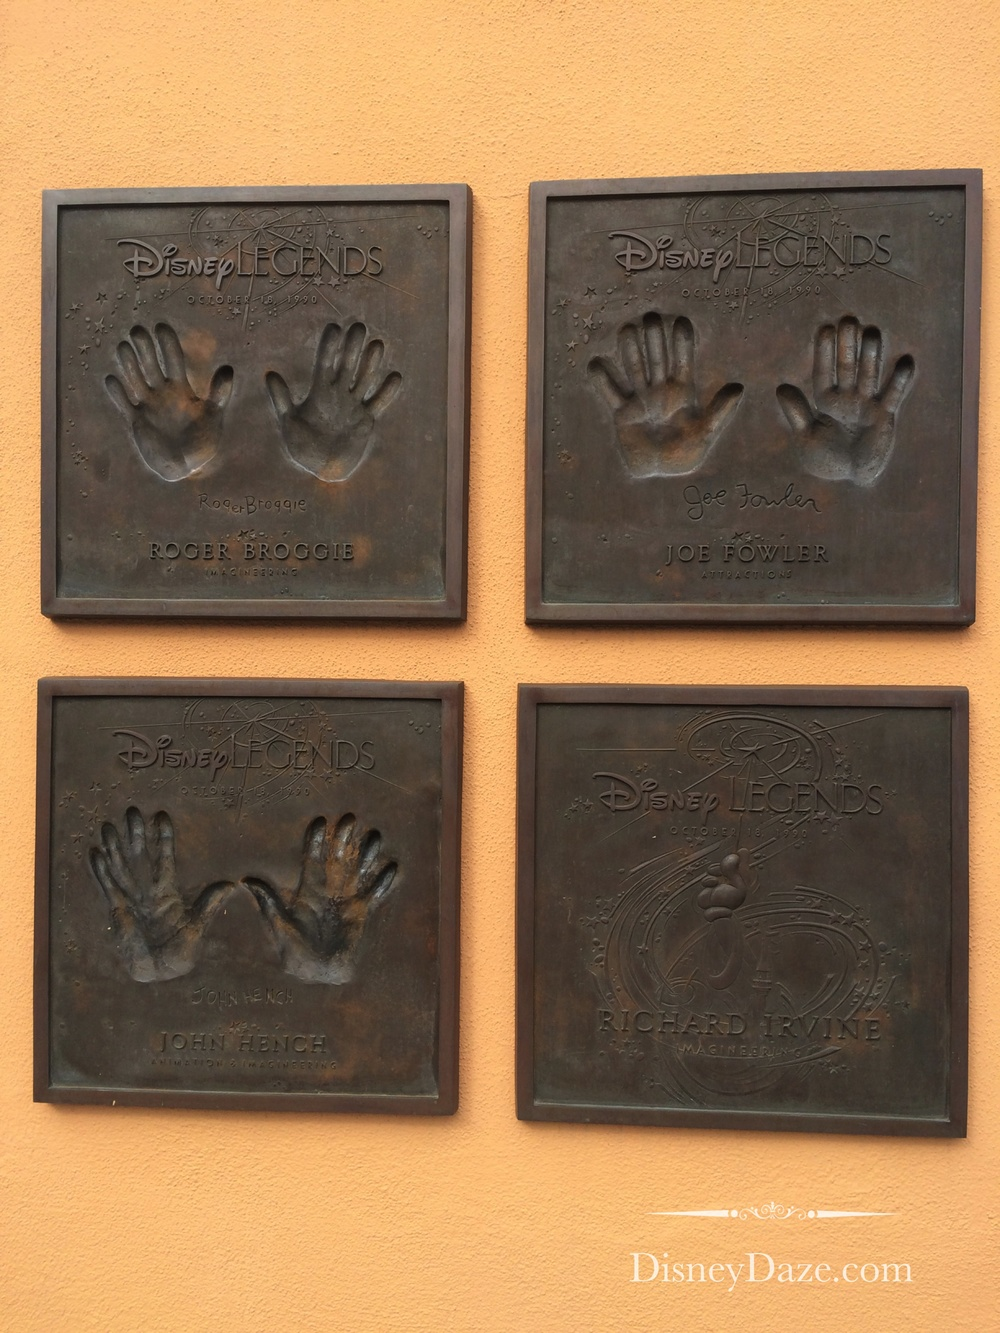 Individuals contributed to design of Disneyland